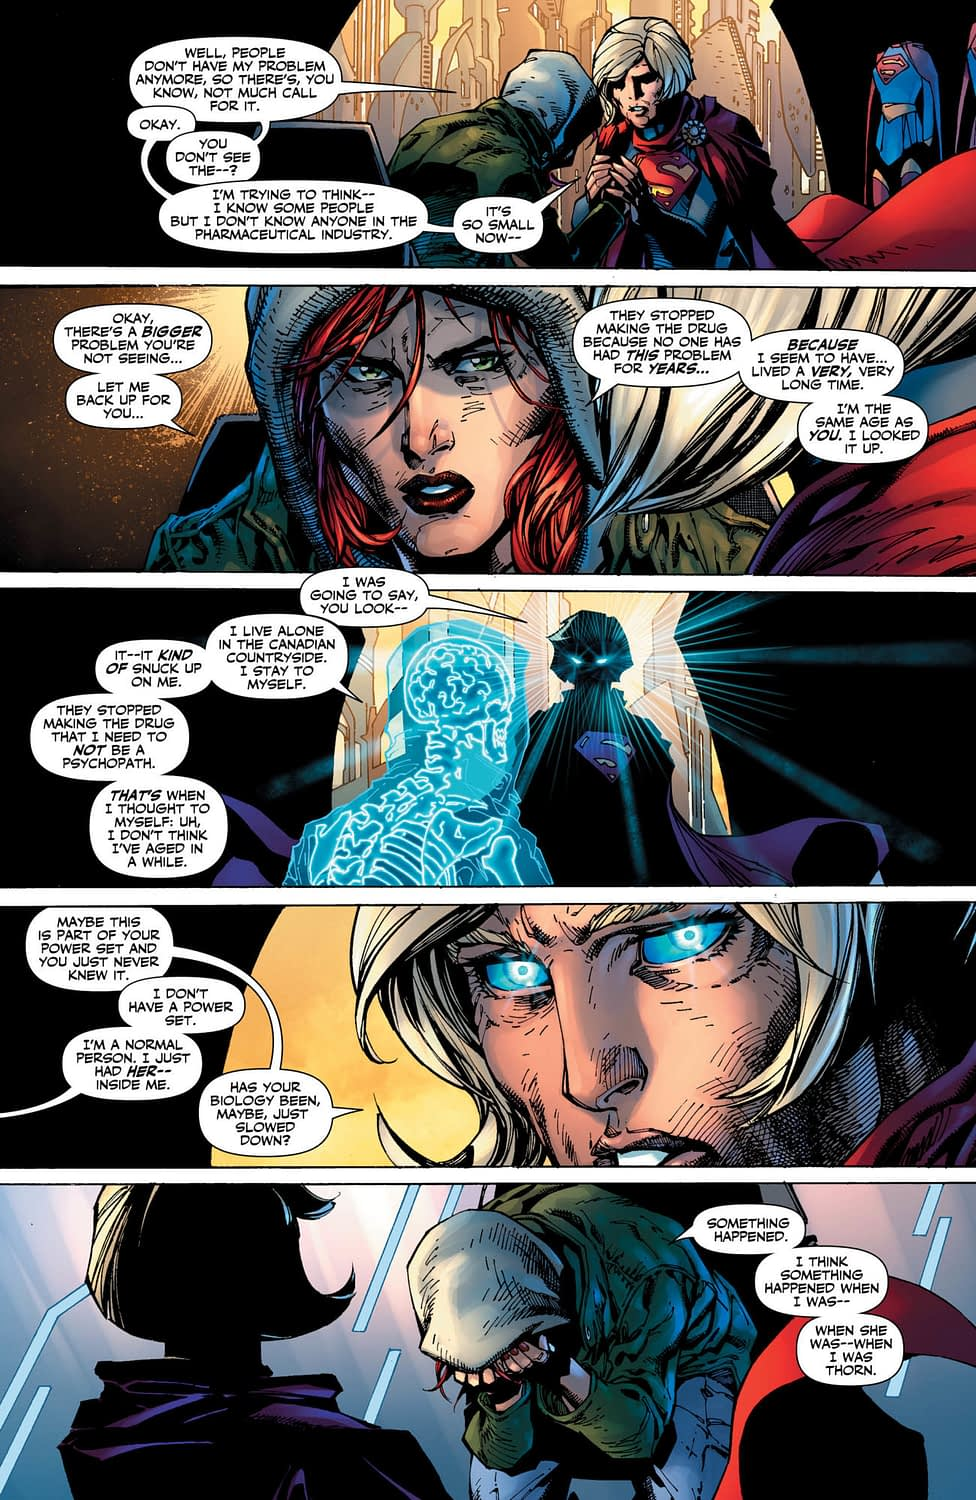 Legion of Superheroes: Millennium #1 Preview Reveals We Still Haven't Fixed Healthcare System in 1000 Years